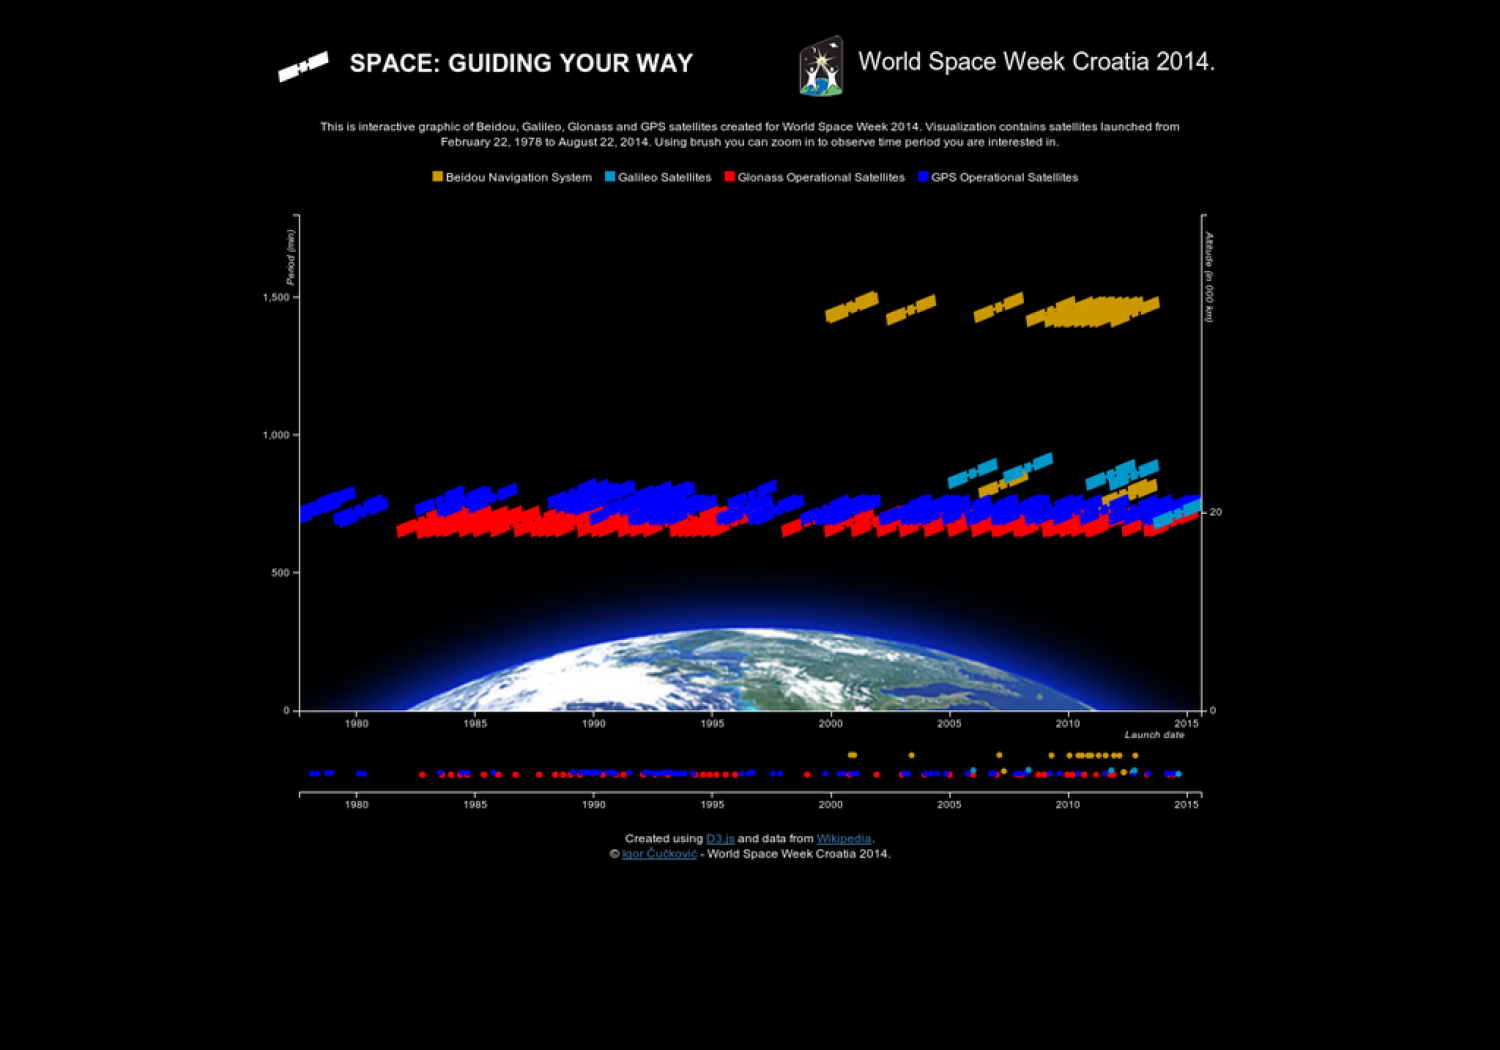 Space: Guiding Your Way - World Space Week 2014. Infographic